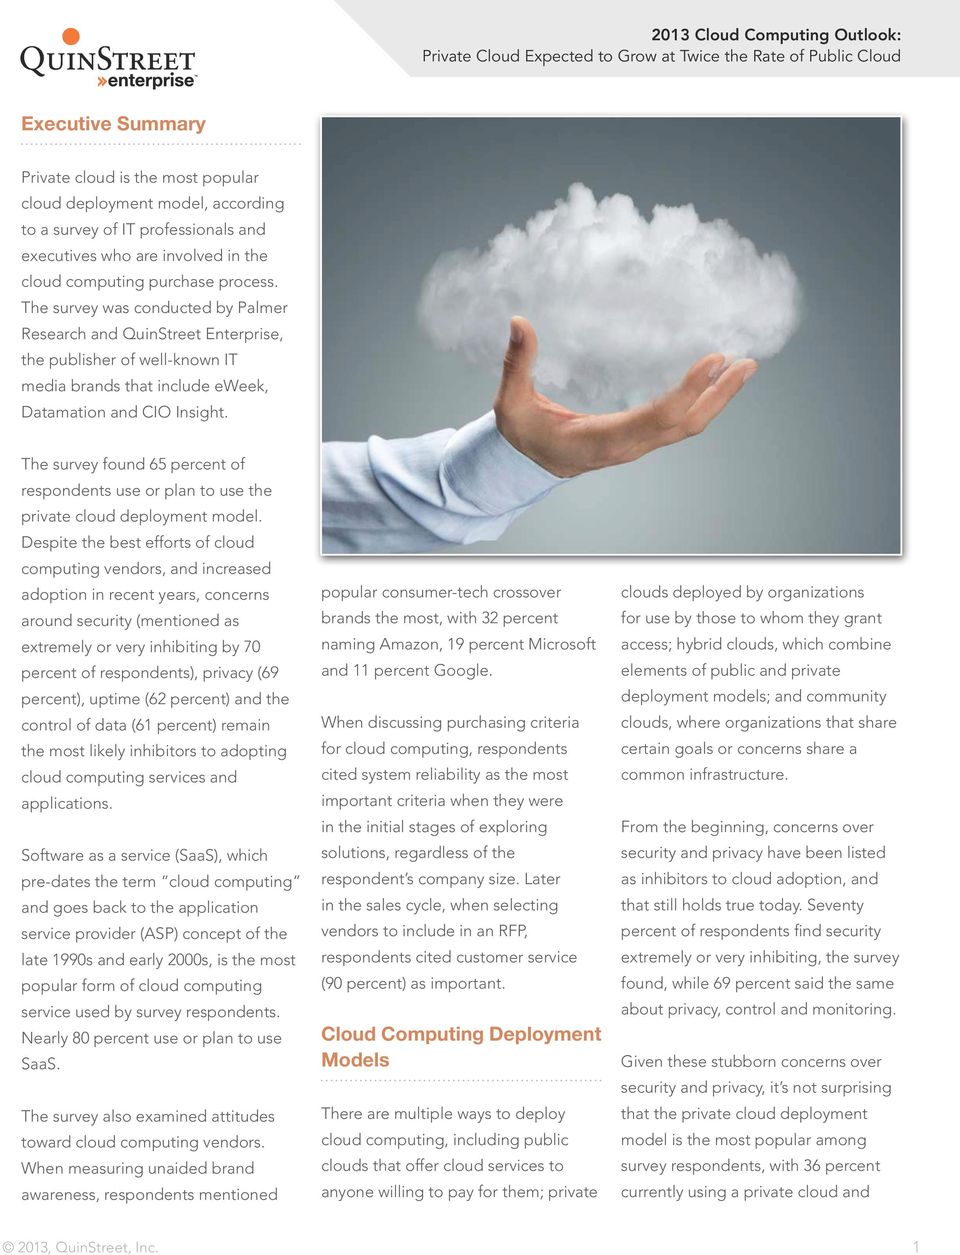 The survey found 65 percent of respondents use or plan to use the private cloud deployment model.